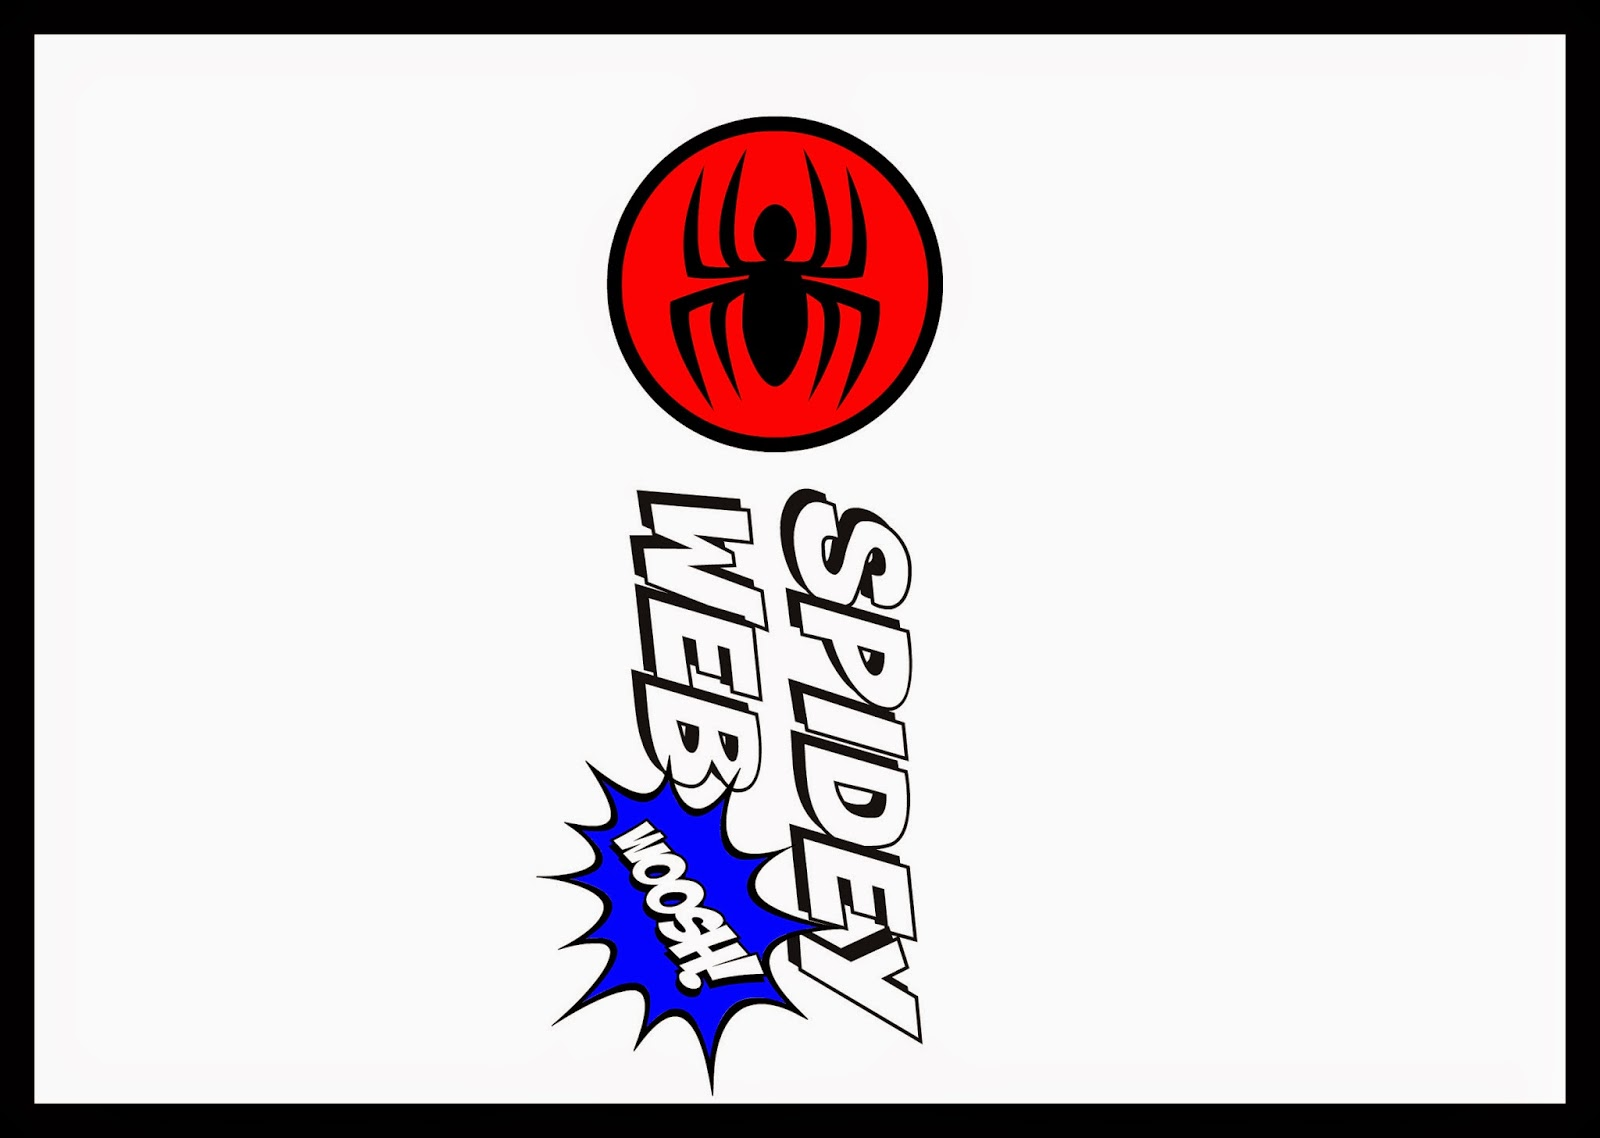 Larissa Another Day Spider Man Web Spray Cover Printable Spiderman Sport It Can Be A Bit Tricky To Make Sure That You Get The Label Fit Silly String So I Am Providing Two Different Printing Options